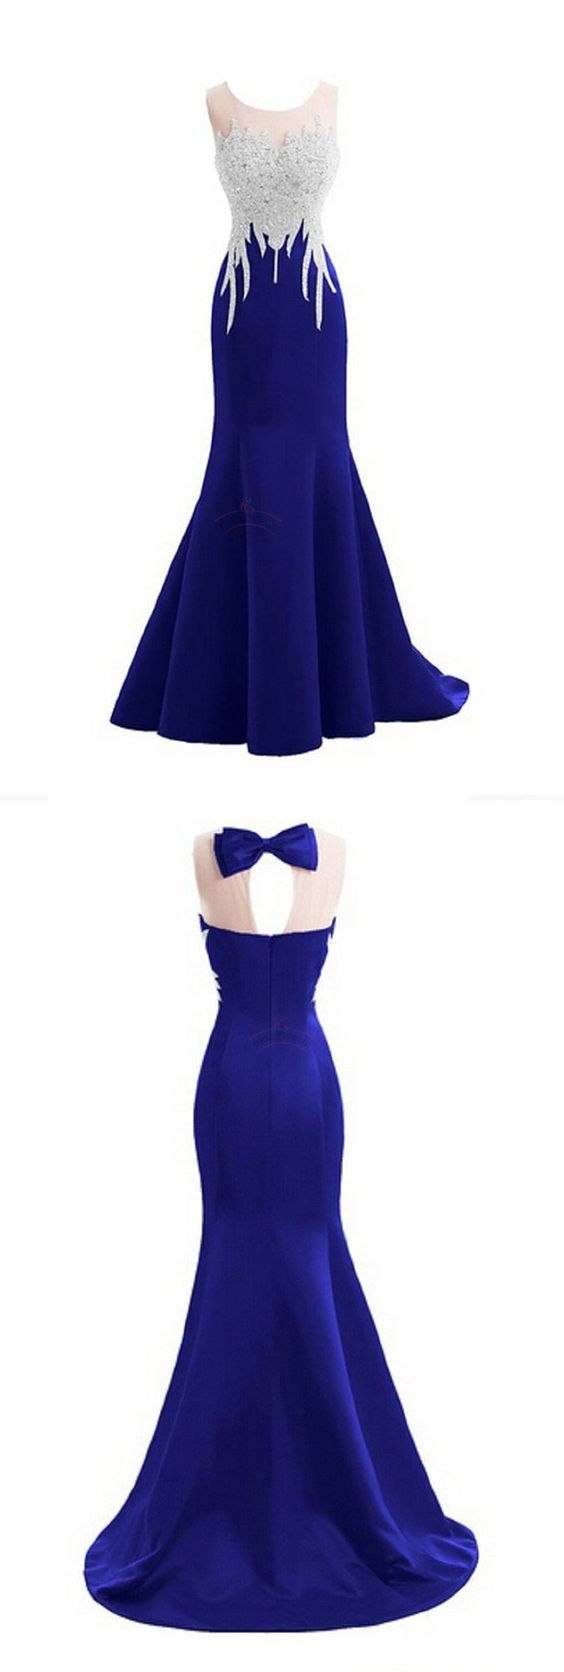 Royal Blue Beaded Mermaid Sexy Party prom dresses 2017 new style  fashion evening gowns for teens girls